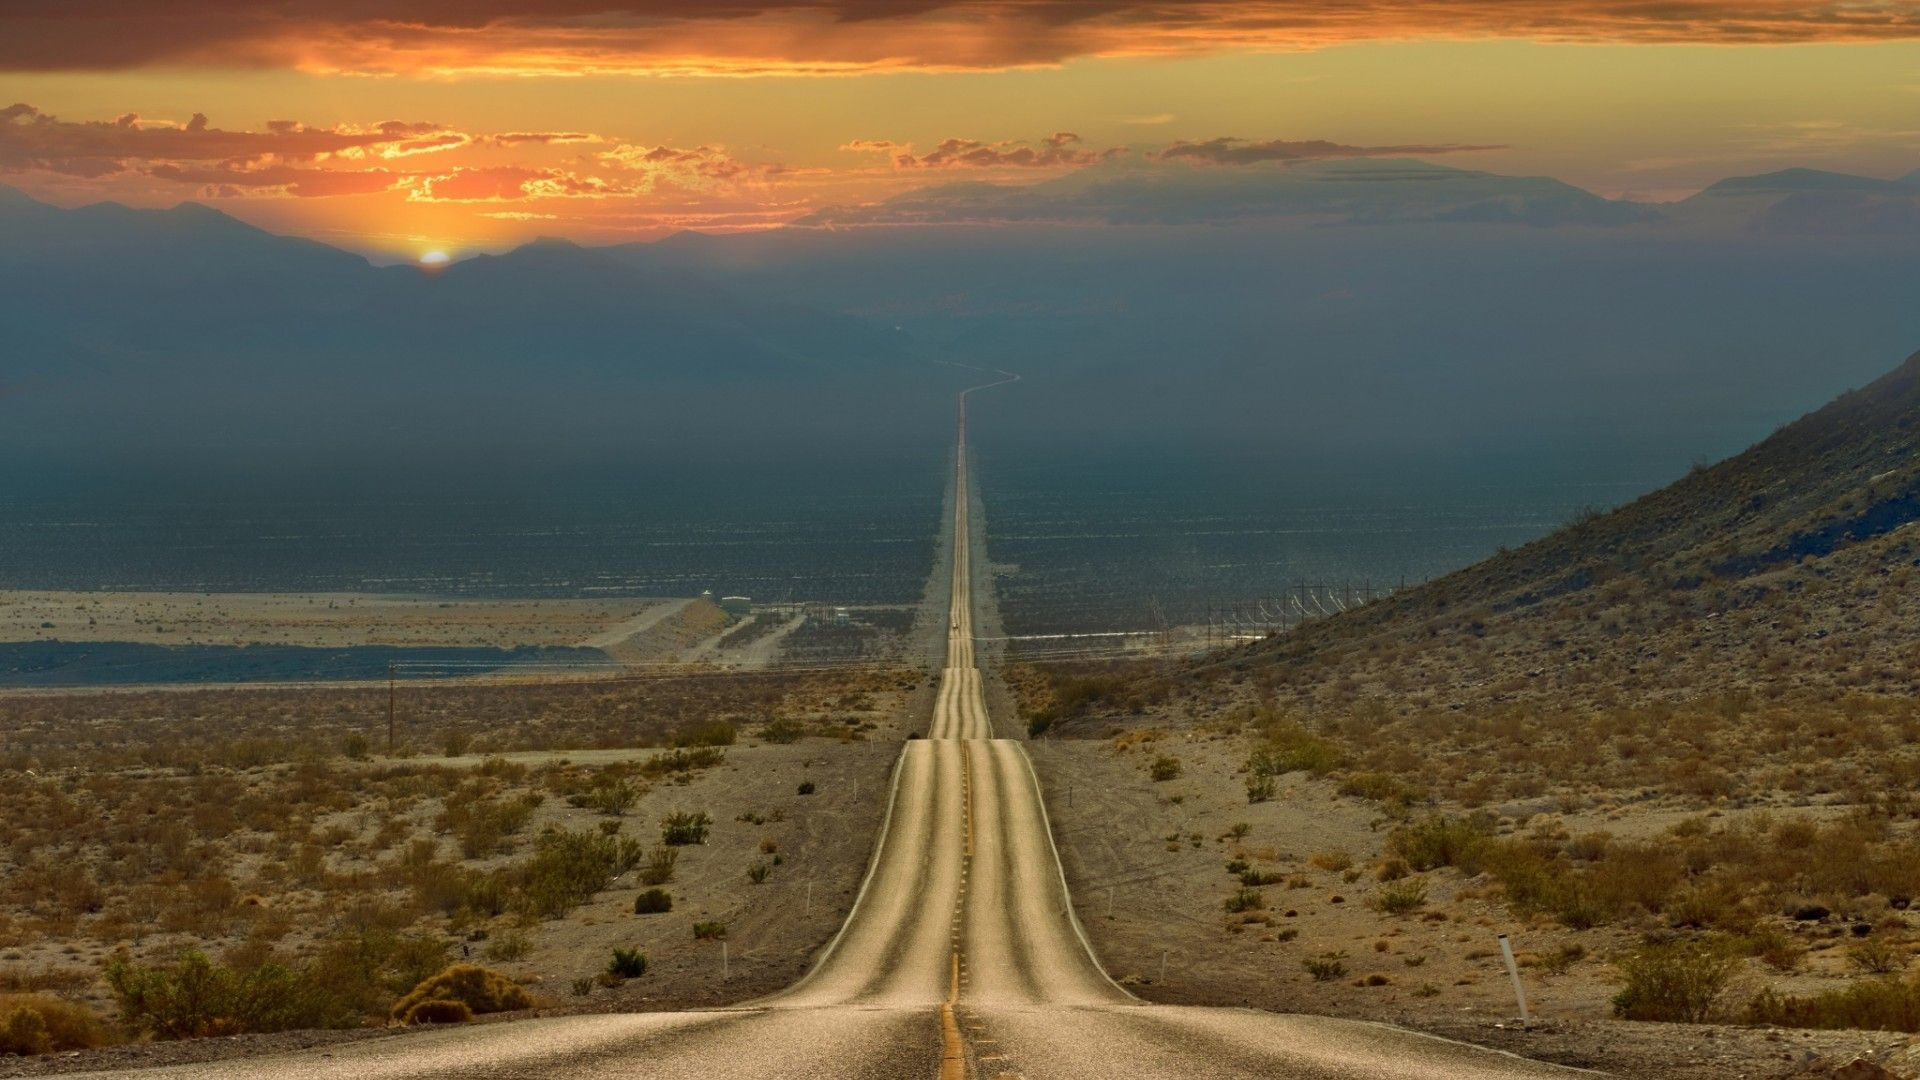 Death Valley Road Sunset Wallpaper